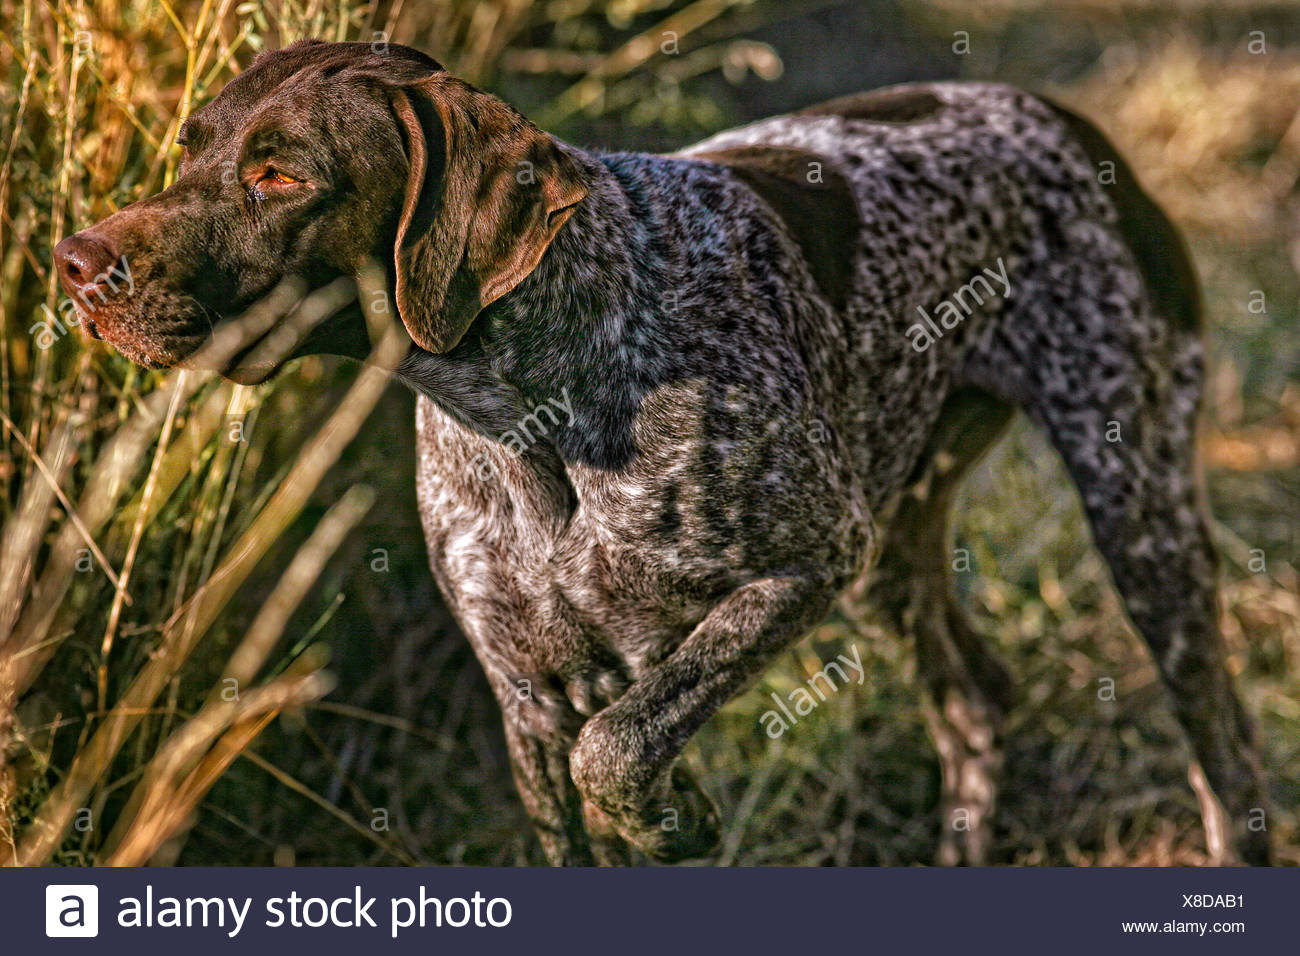 German Short Haired pointer dog hunting - Stock Image